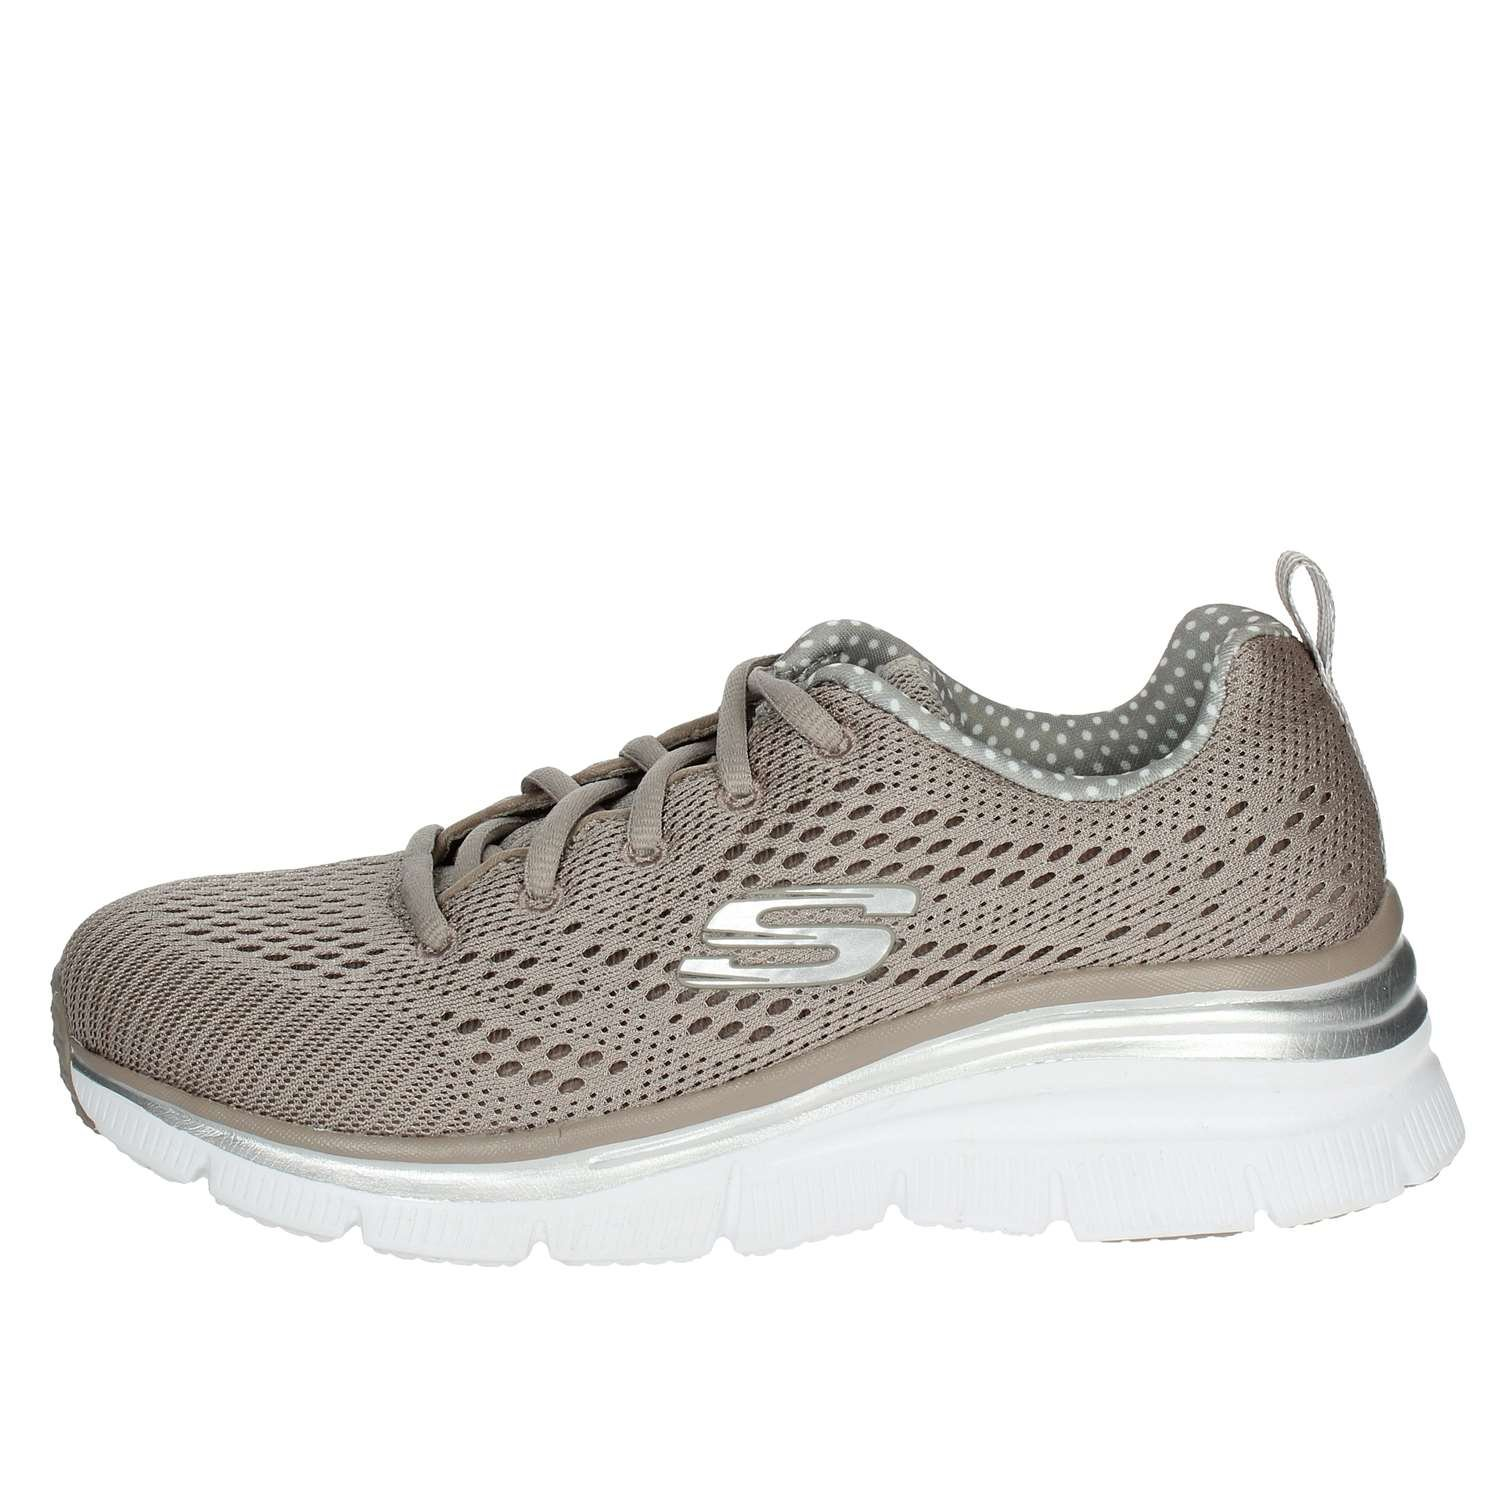 Skechers Scarpe Donna Sneakers Statement in Tela Beige 12704 ...